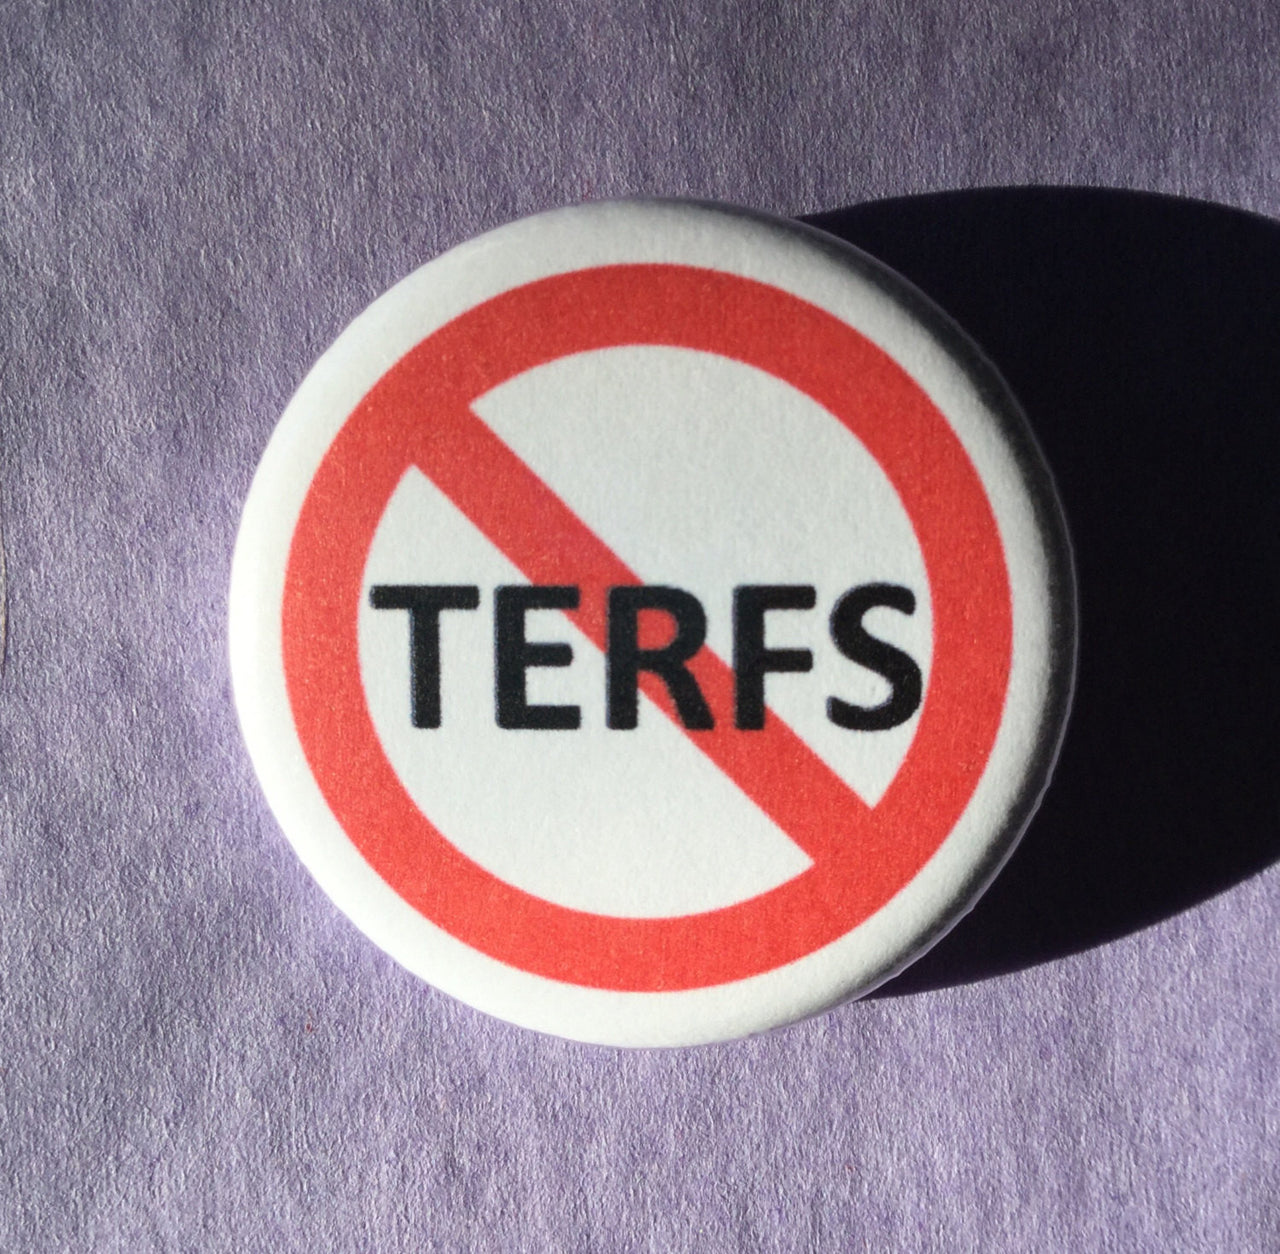 Anti-TERFS button / Trans rights button - Radical Buttons